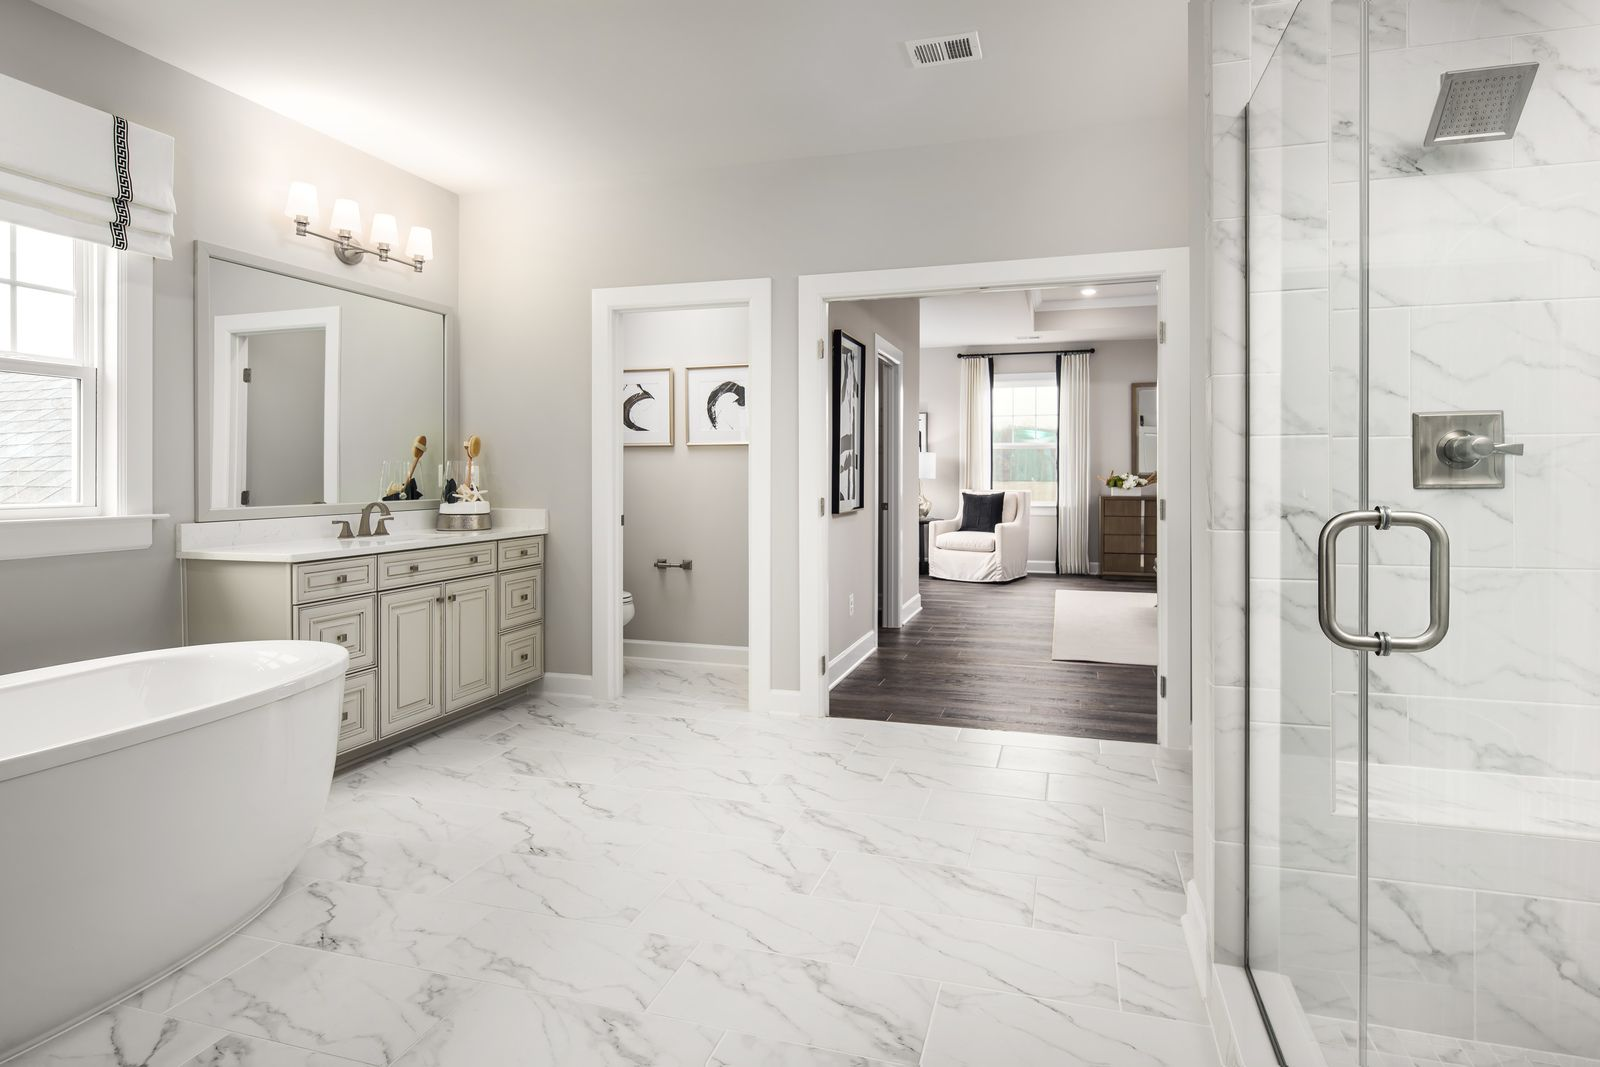 Bathroom featured in the Stratford Hall By HeartlandHomes in Morgantown, WV